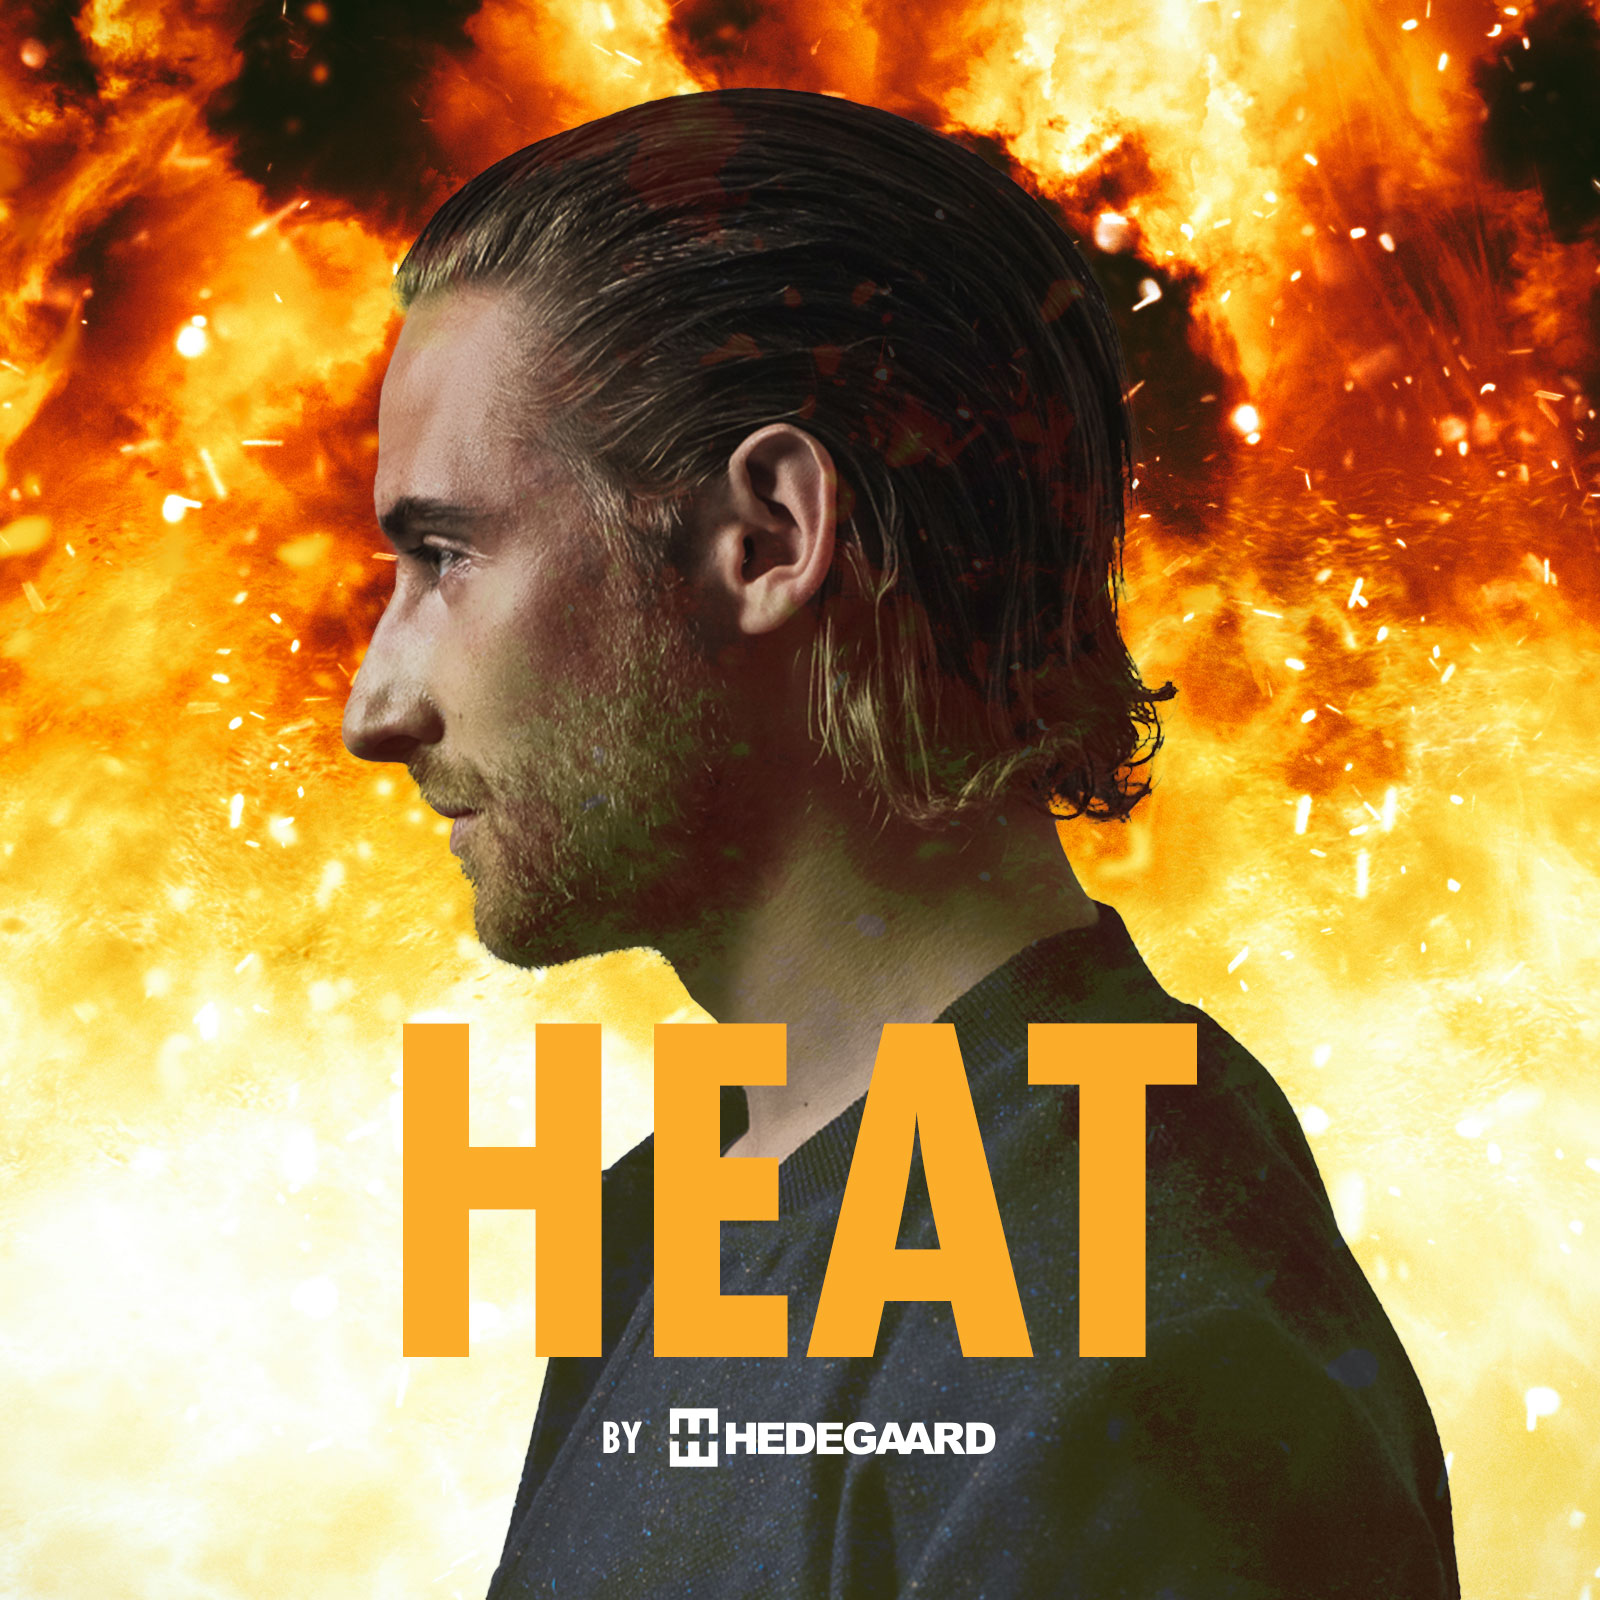 HEAT by HEDEGAARD